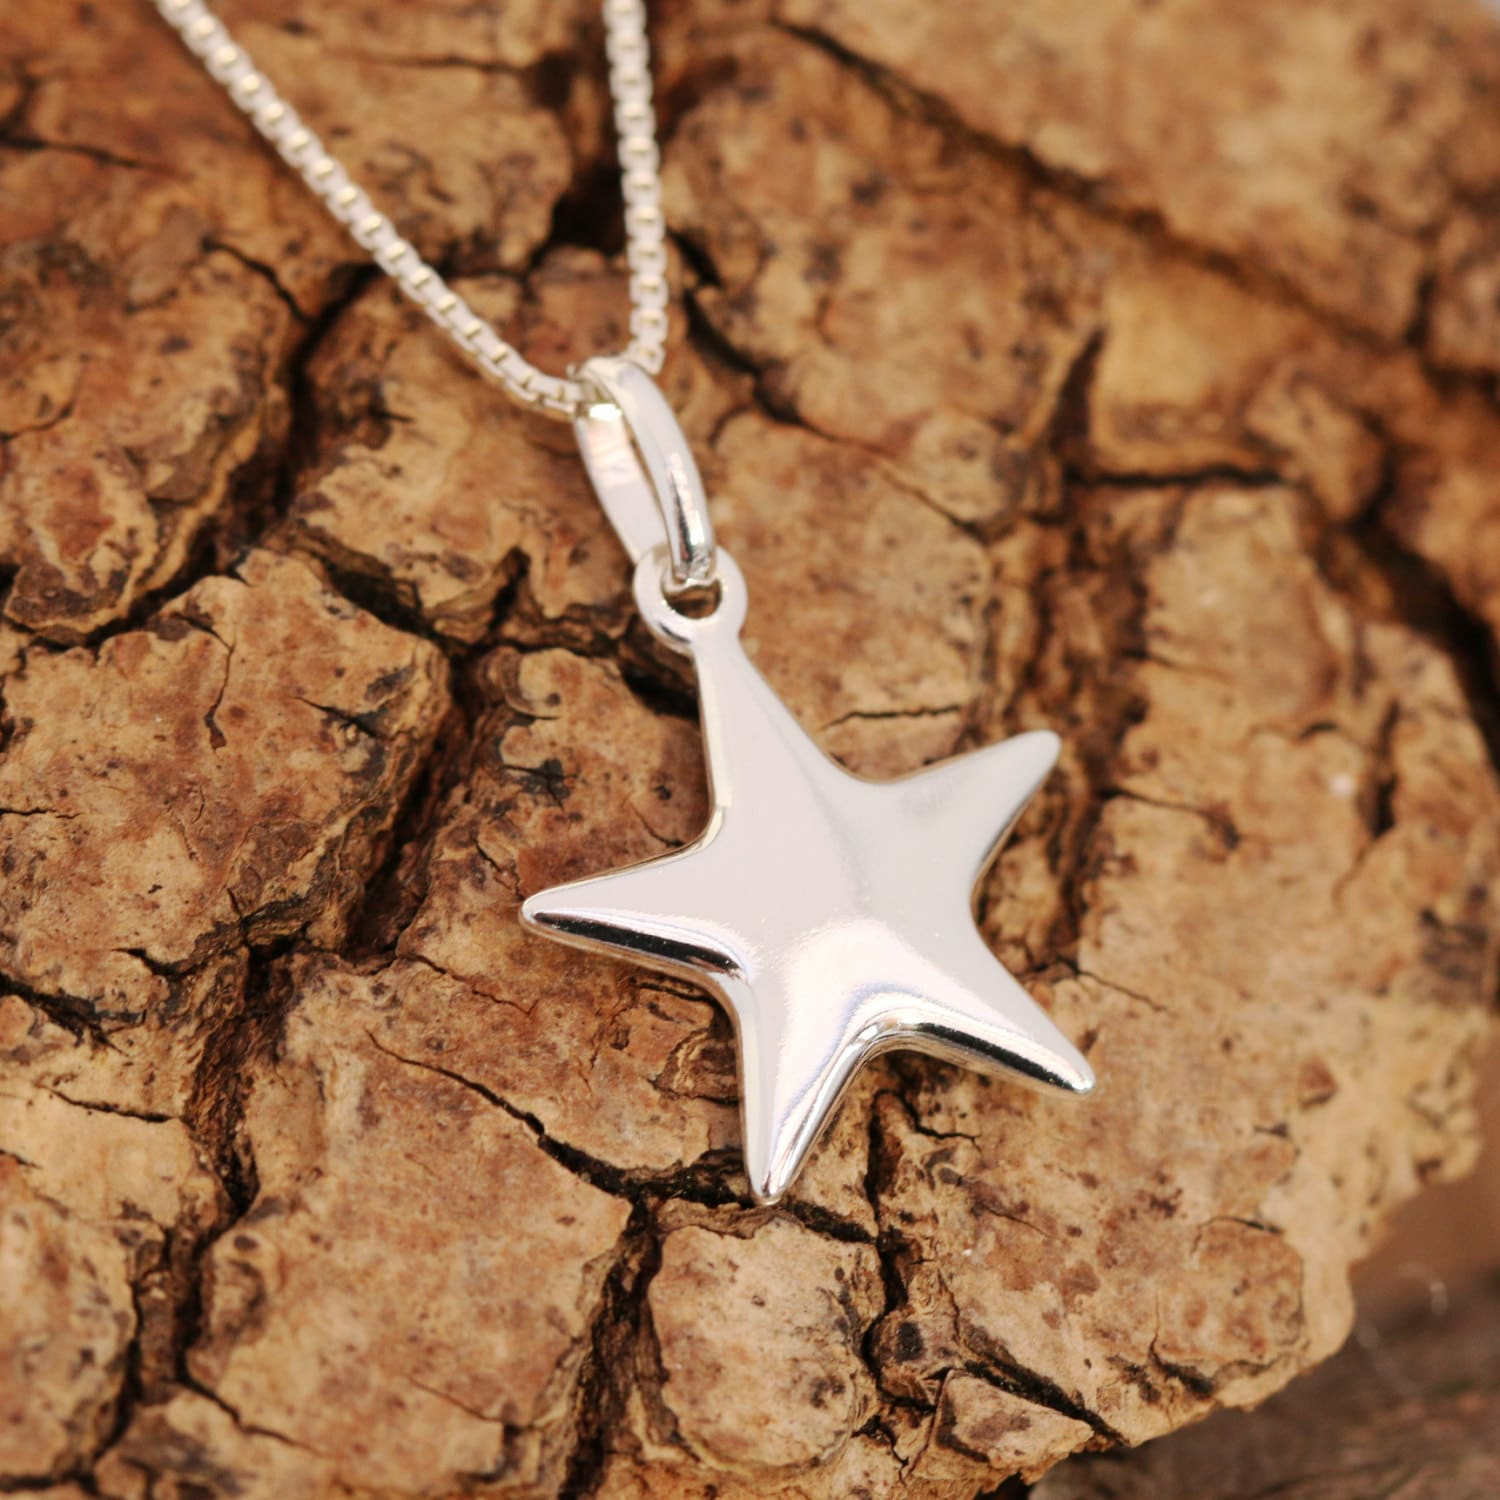 Sterling silver star pendant necklace silver star necklace wishing sterling silver star pendant necklace silver star necklace wishing star necklace lucky star necklace gift for her birthday gift aloadofball Image collections